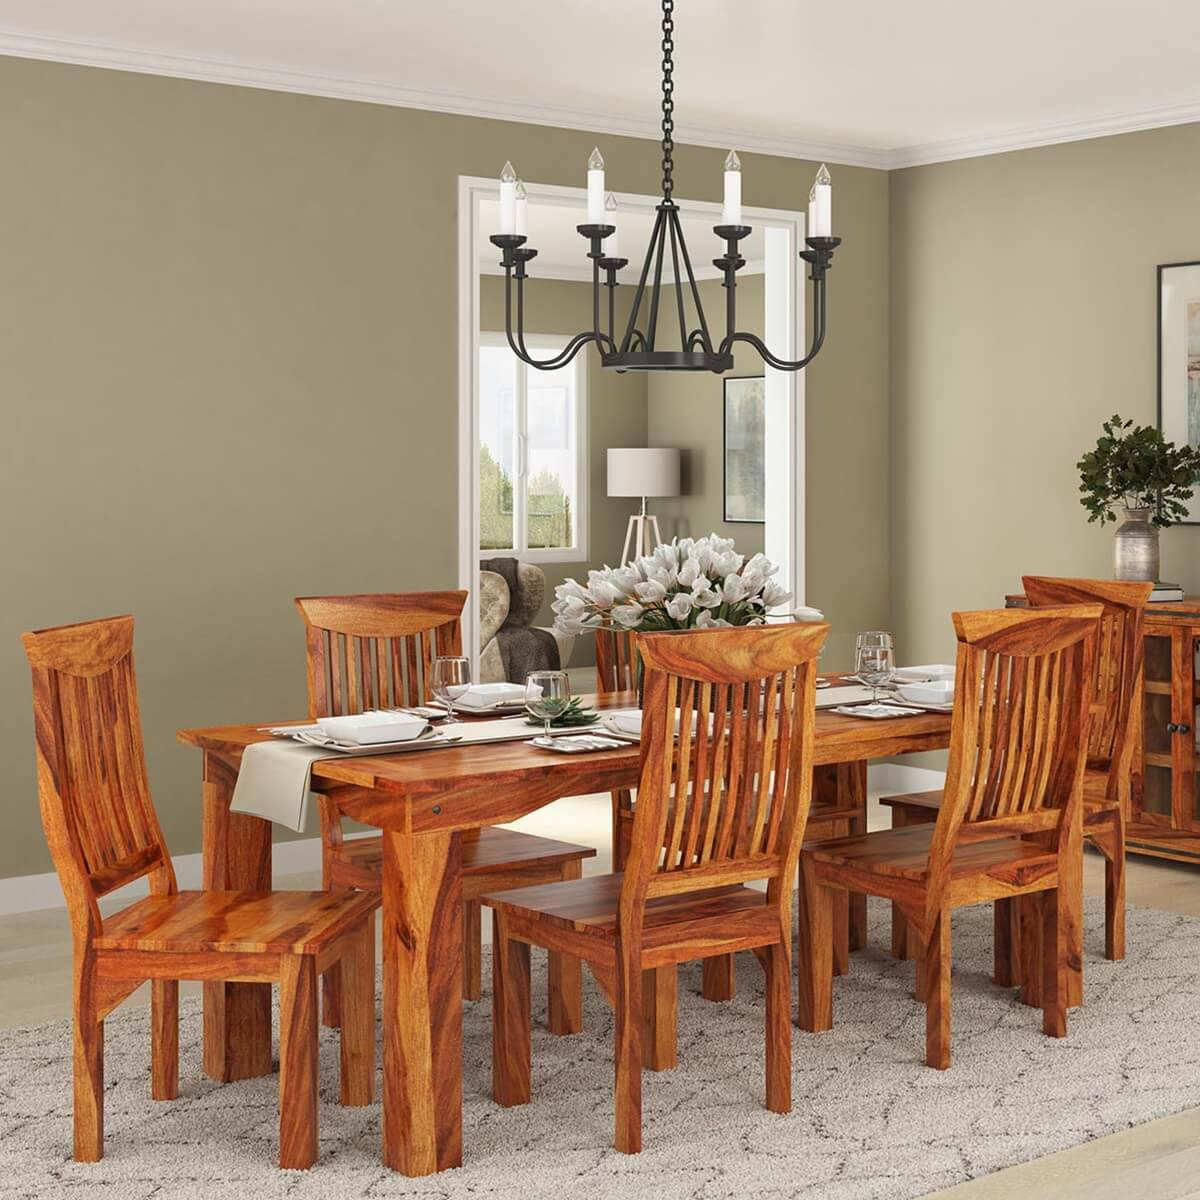 Idaho modern rustic solid wood dining table chair set for Solid wood furniture